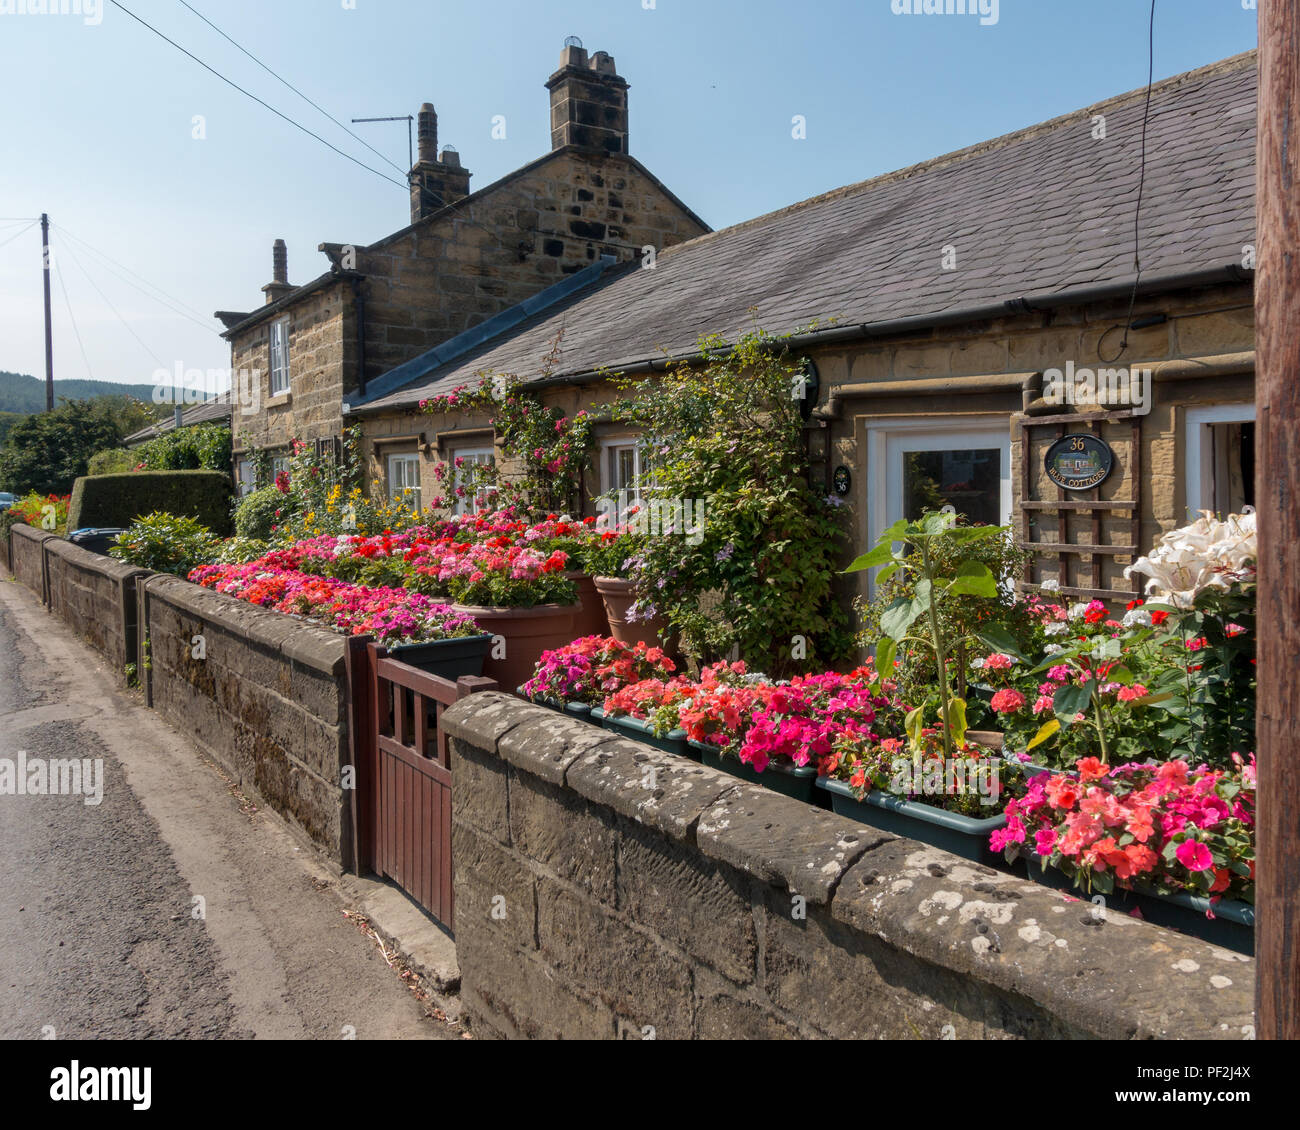 Pink colorful flowerpots have been well looked after to keep the blooms in tip top condition without rainfall, Osmotherley, North Yorkshire Moors - Stock Image